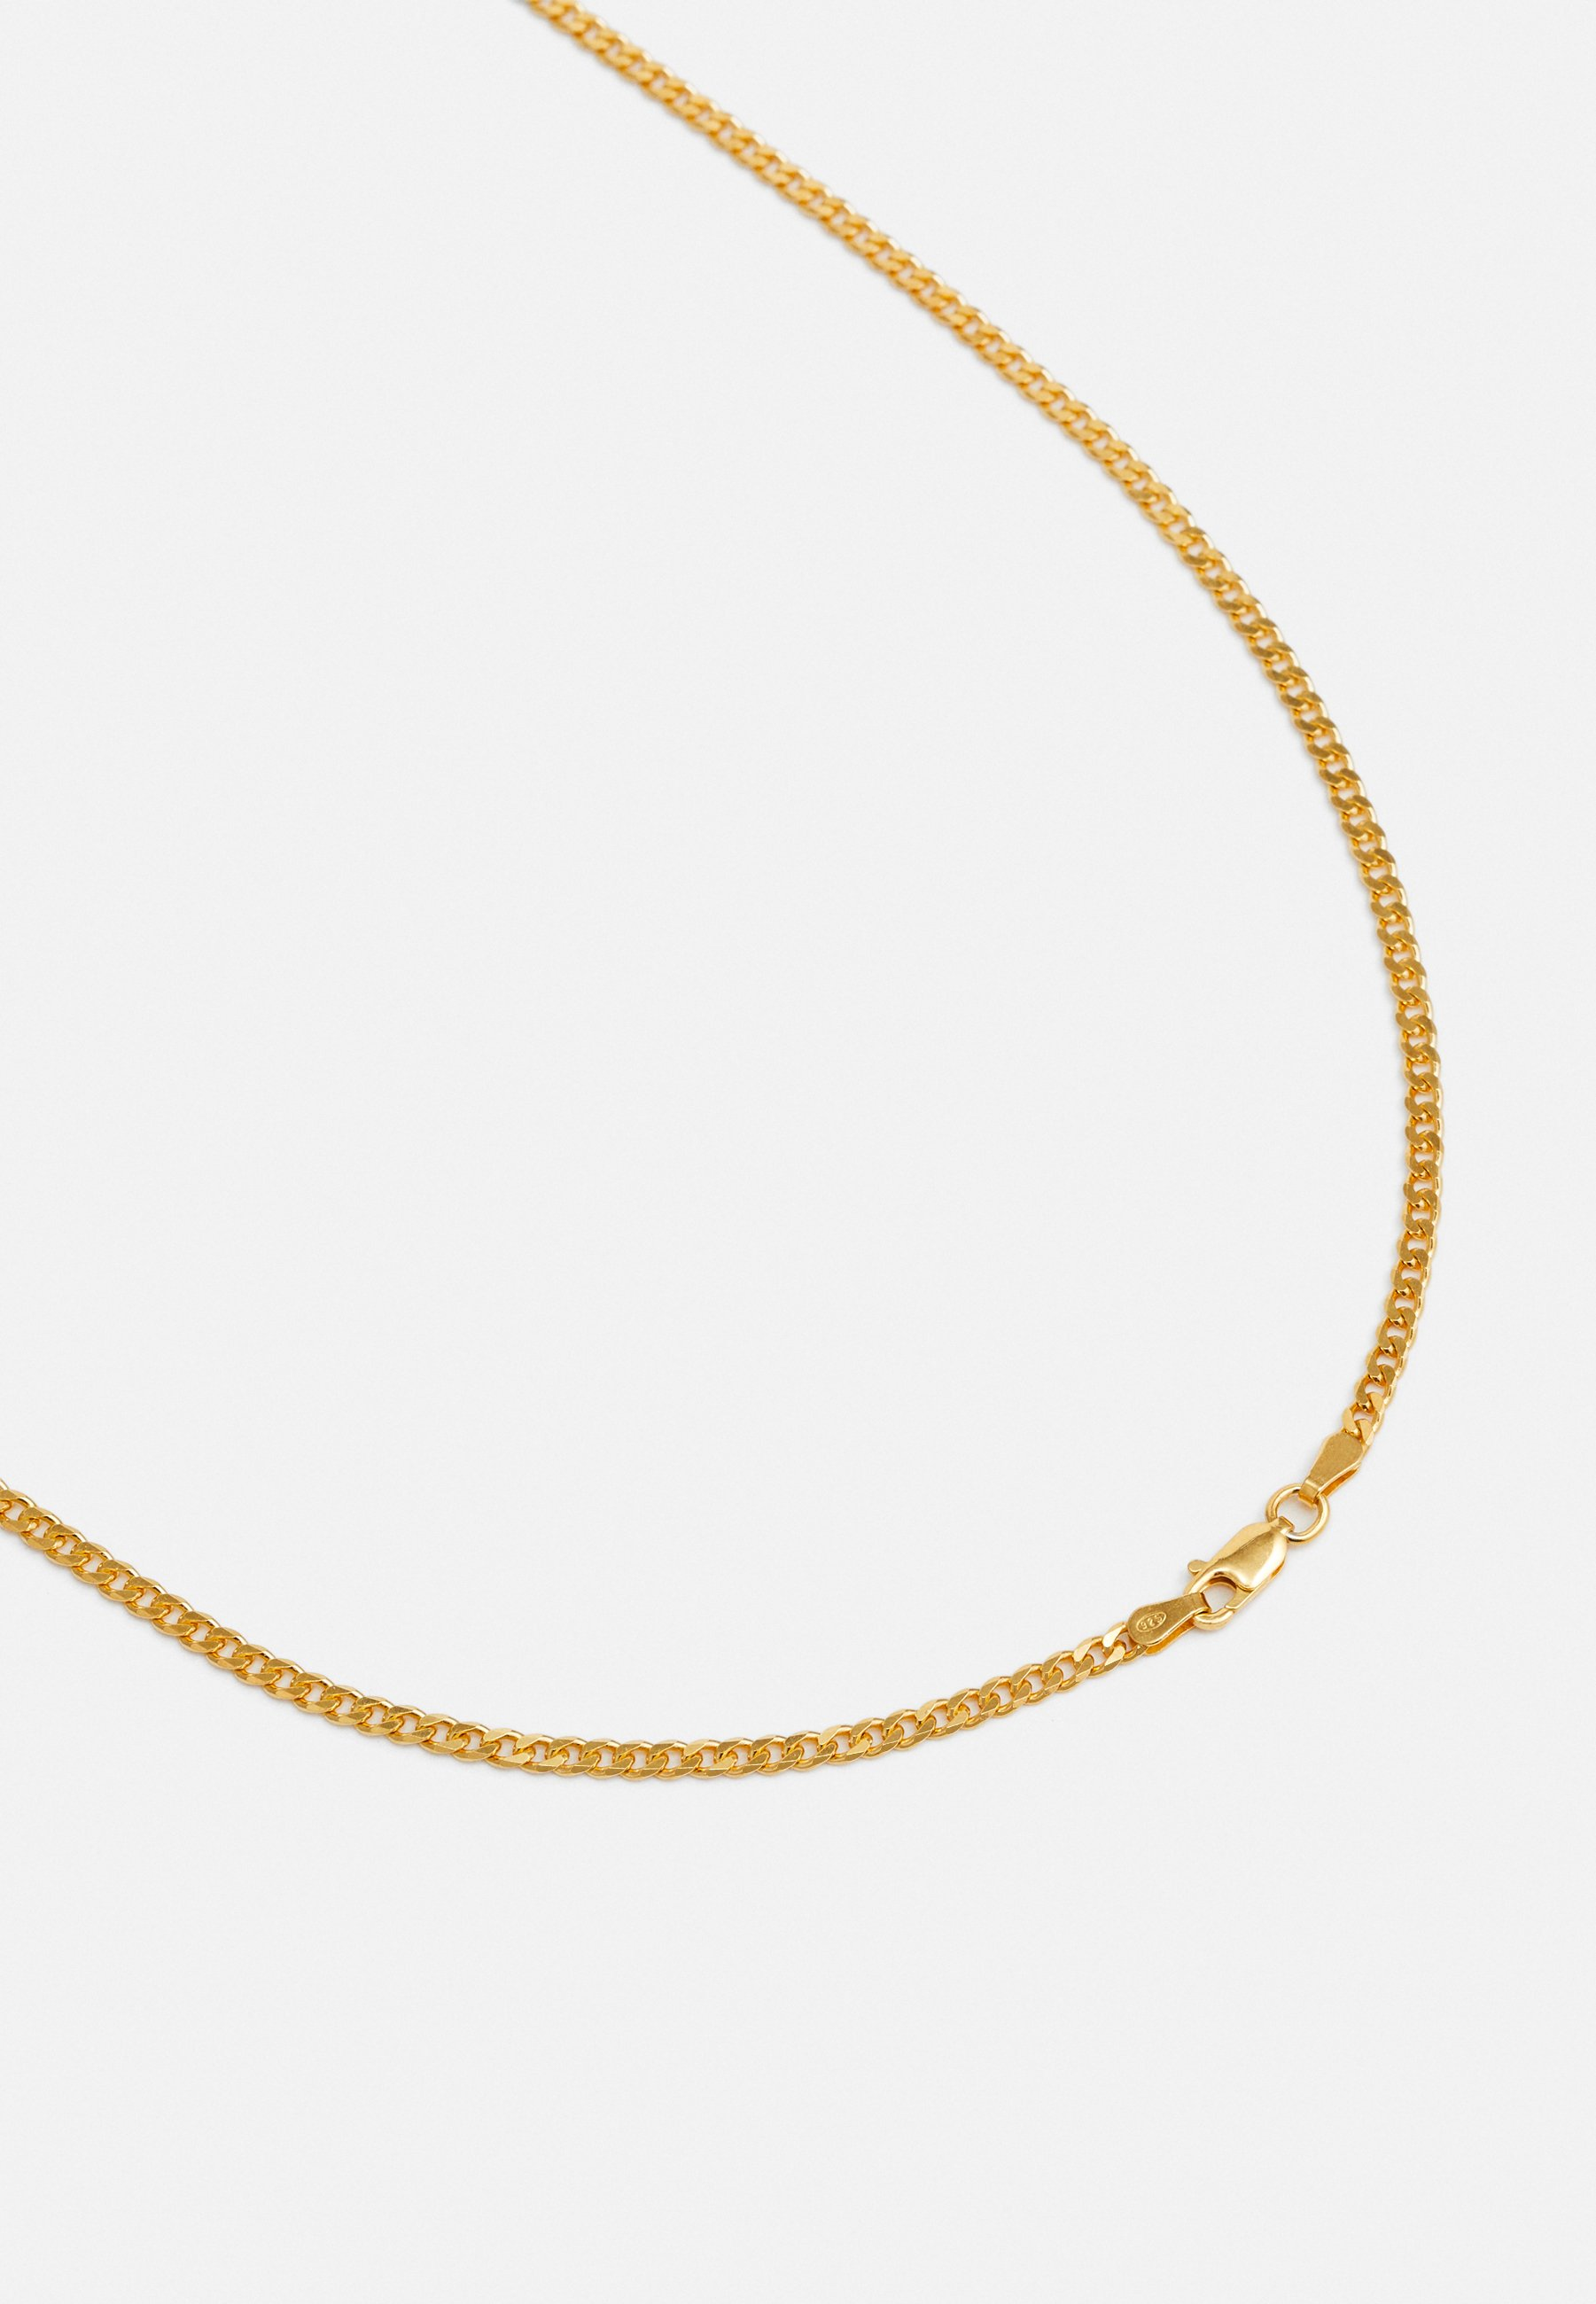 Hermina Athens Anchor Chain - Halskette Gold-coloured/gold